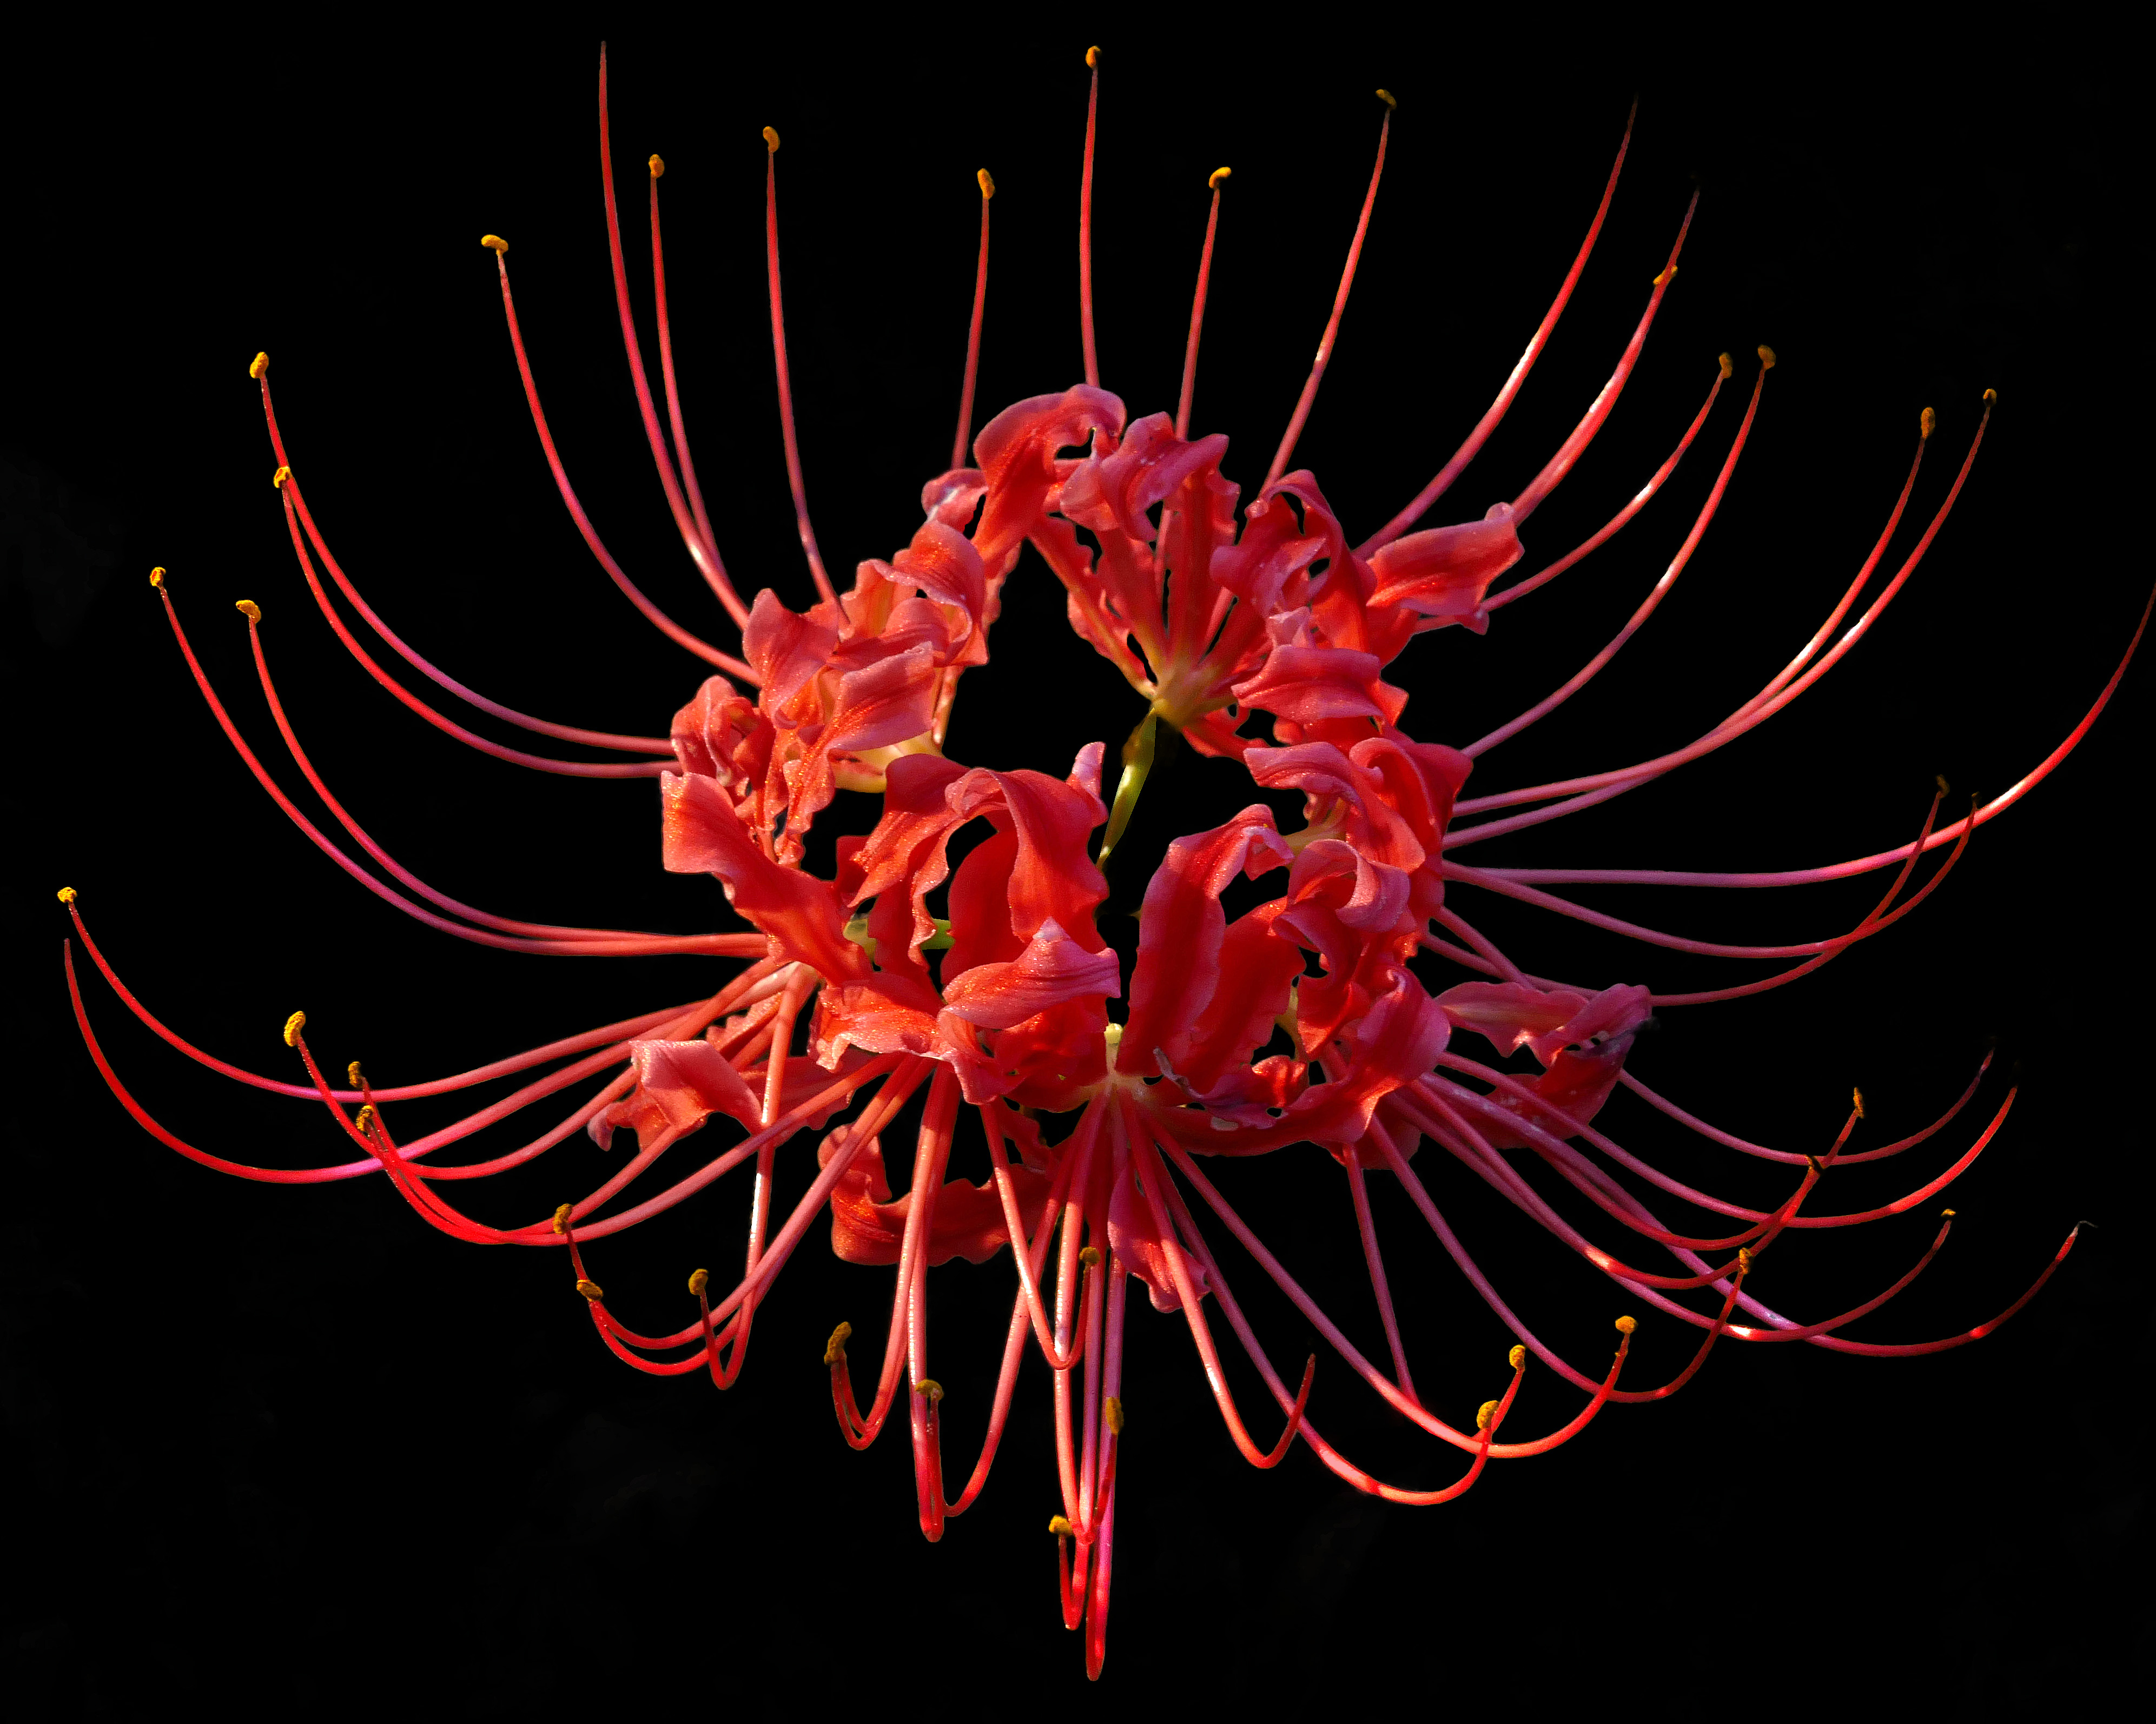 https://upload.wikimedia.org/wikipedia/commons/4/48/Red_Spider_Lily----Lycoris_radiata.jpg